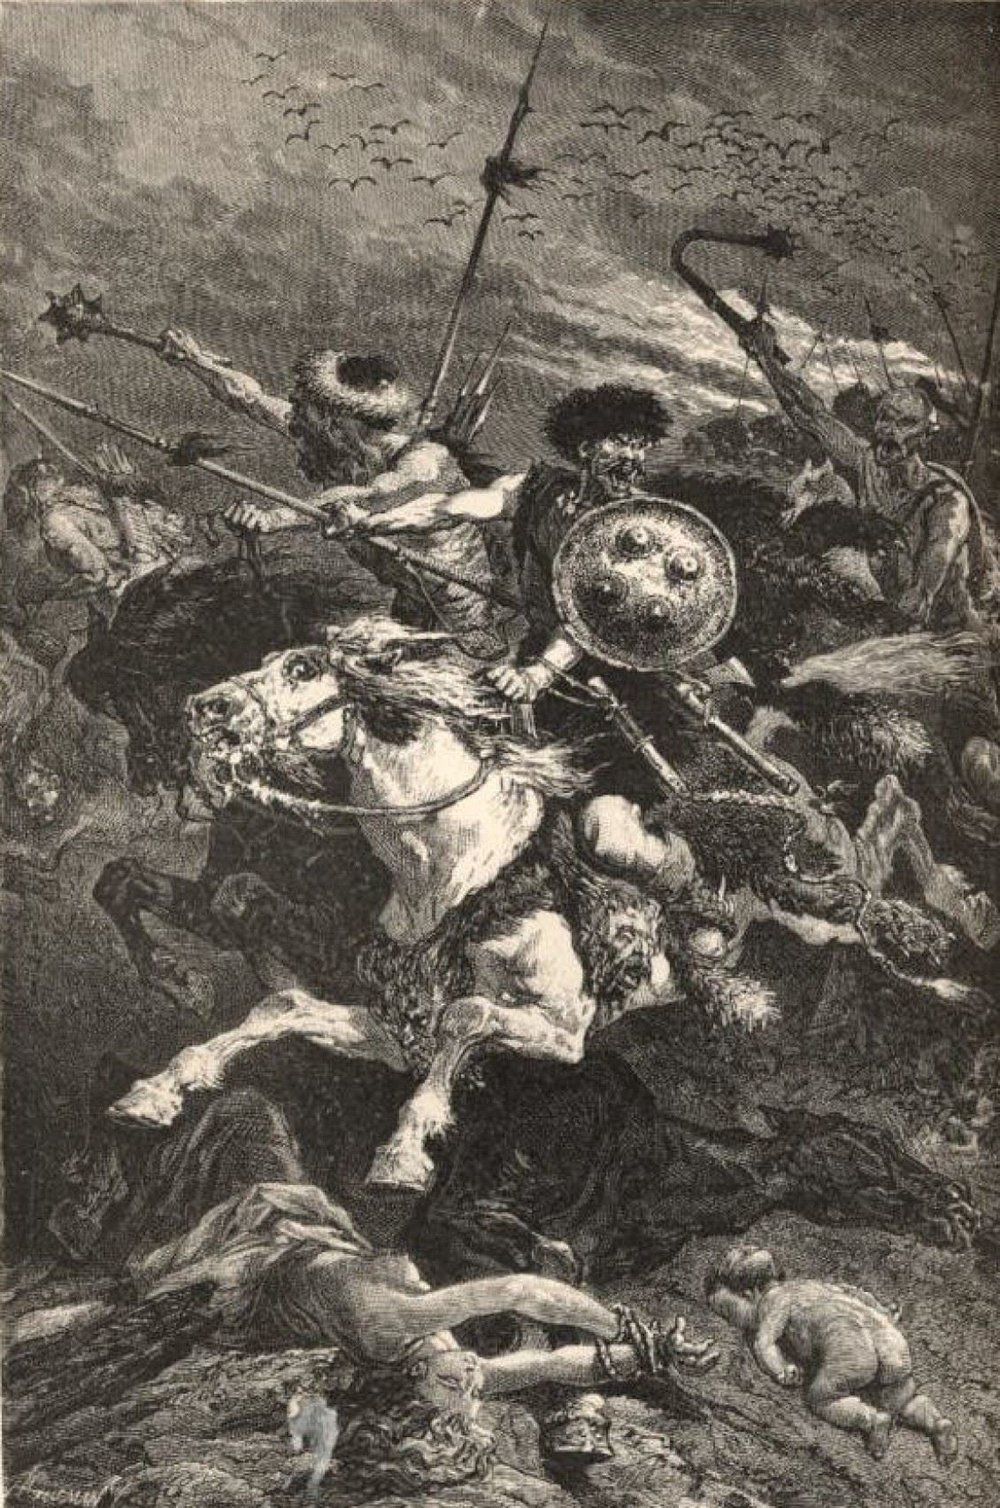 ( 19th-century portrayal of the Huns as barbarians )